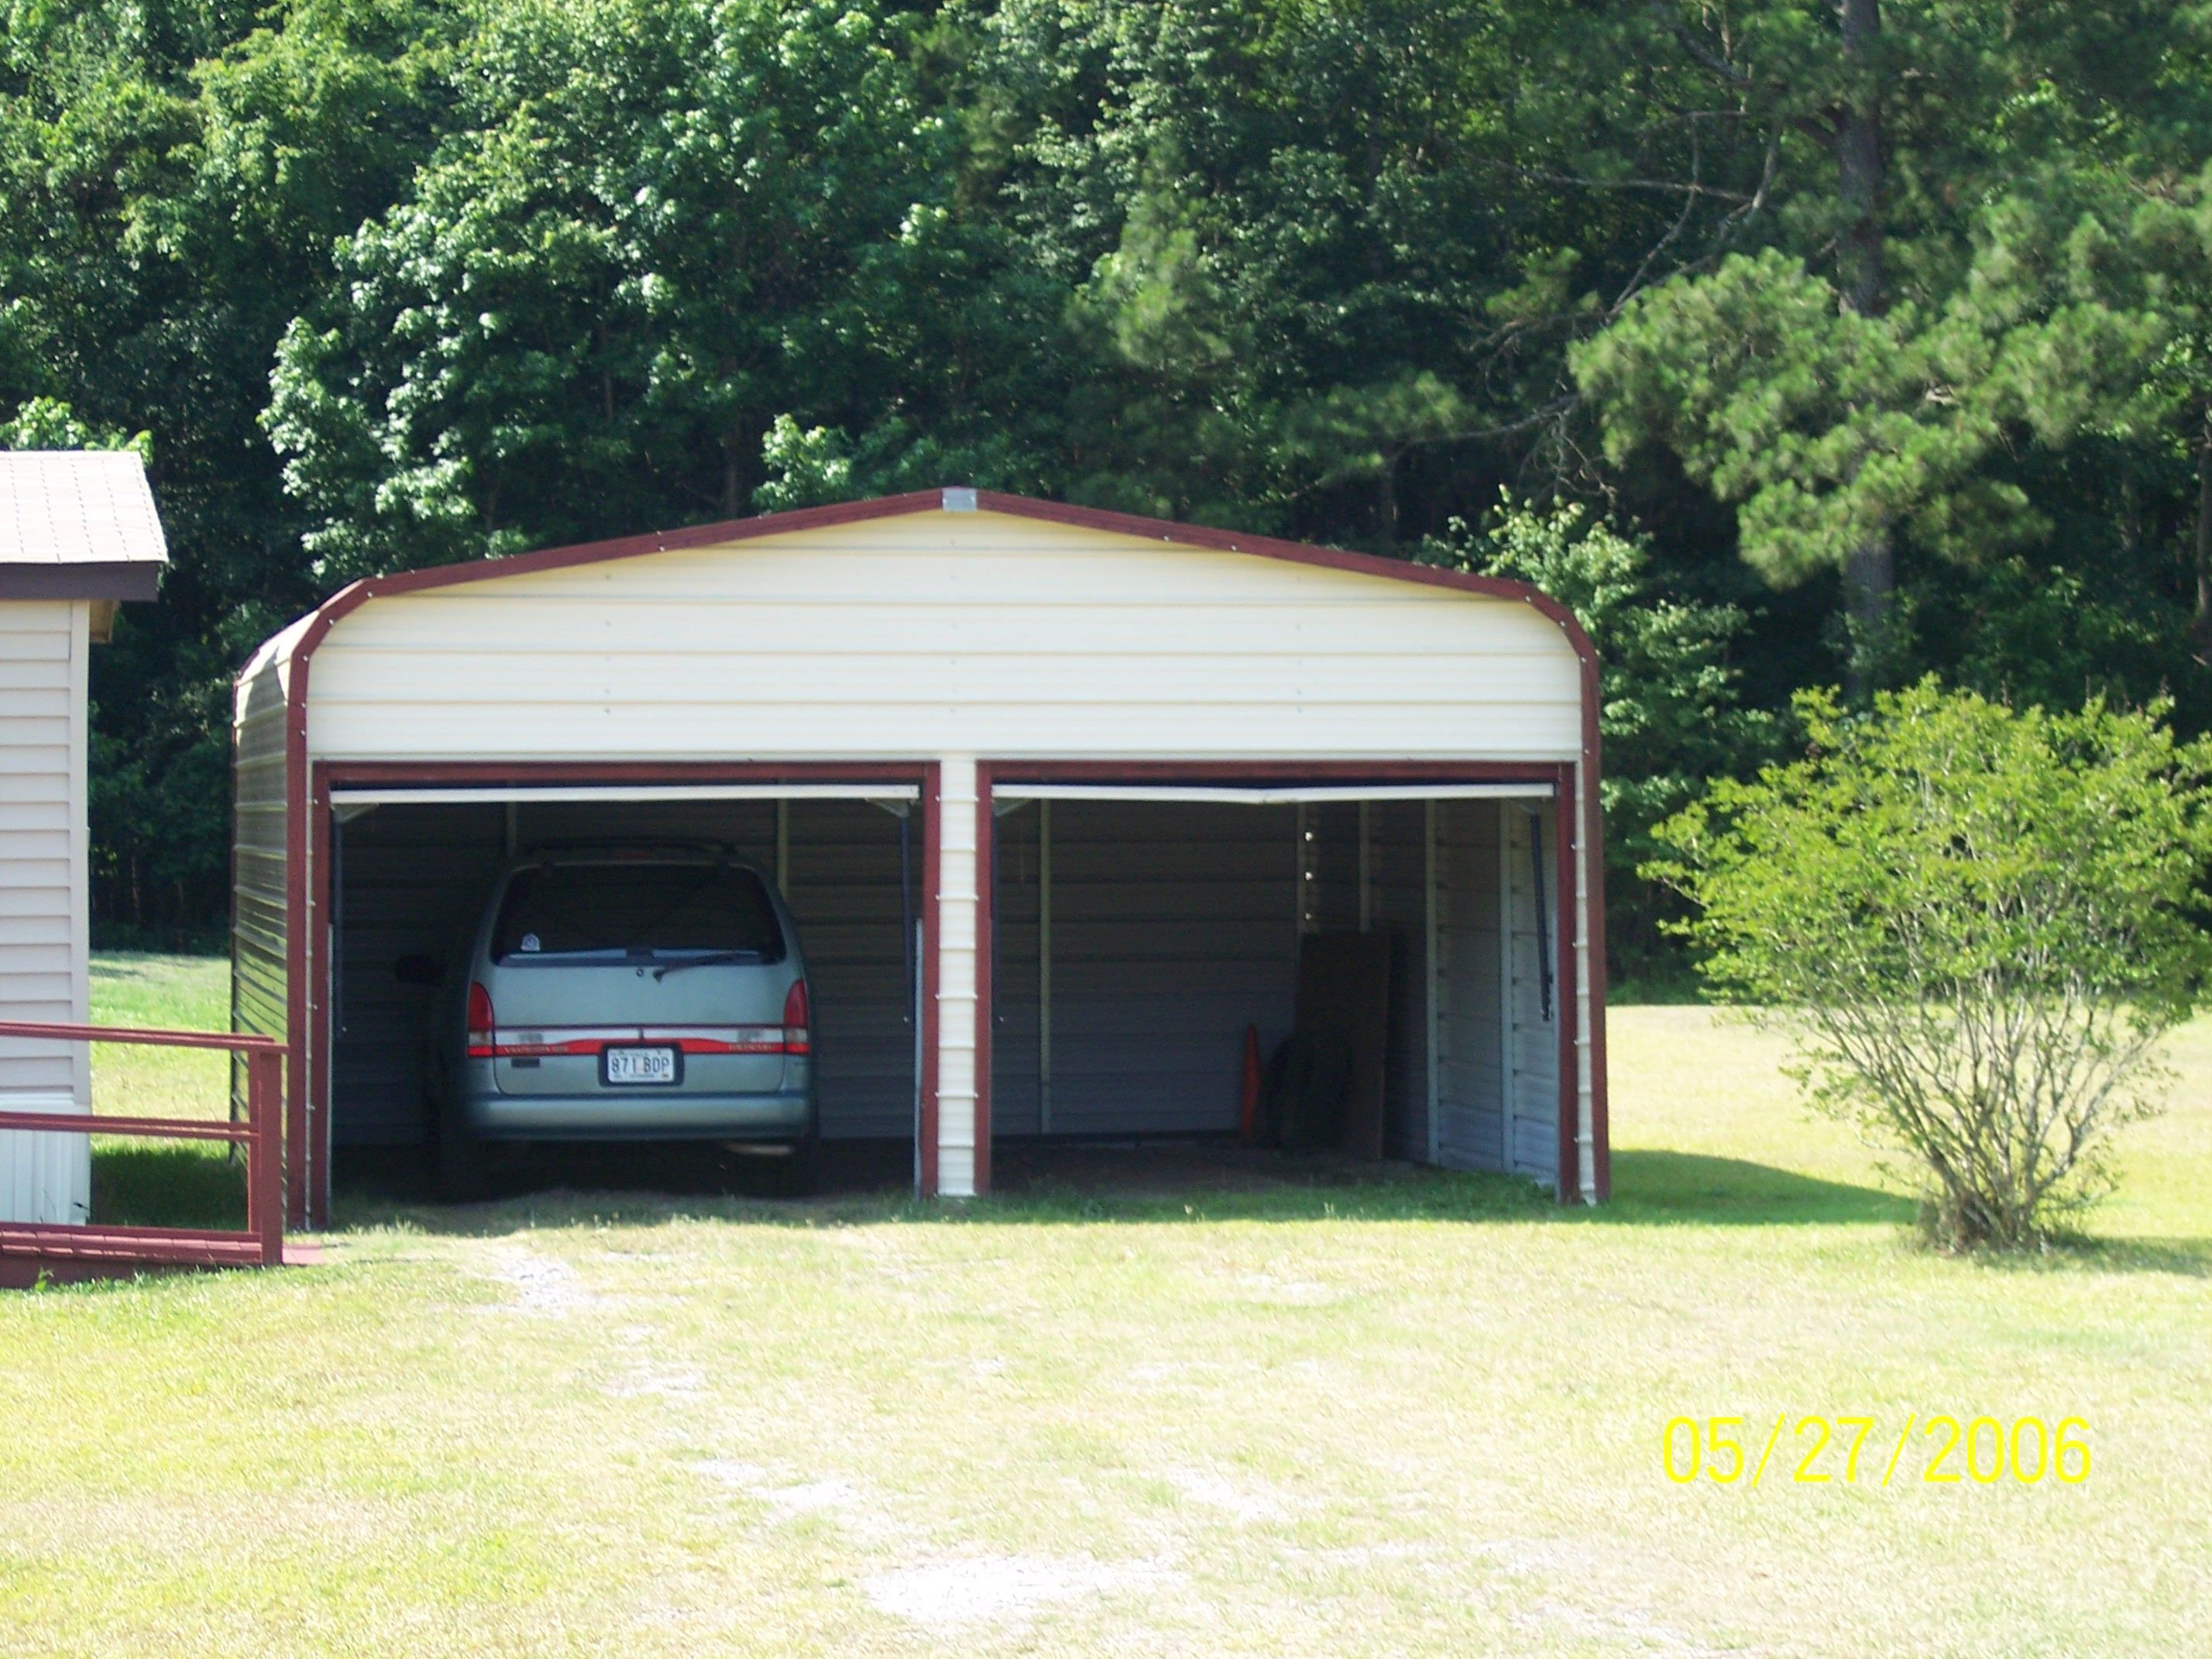 Cheap Carports Carport Garage Portable Carport Diy Carport Palram Carport Wood Carport House Carport Cheap Carports Carports For Sale M With Images Enclosed Carport